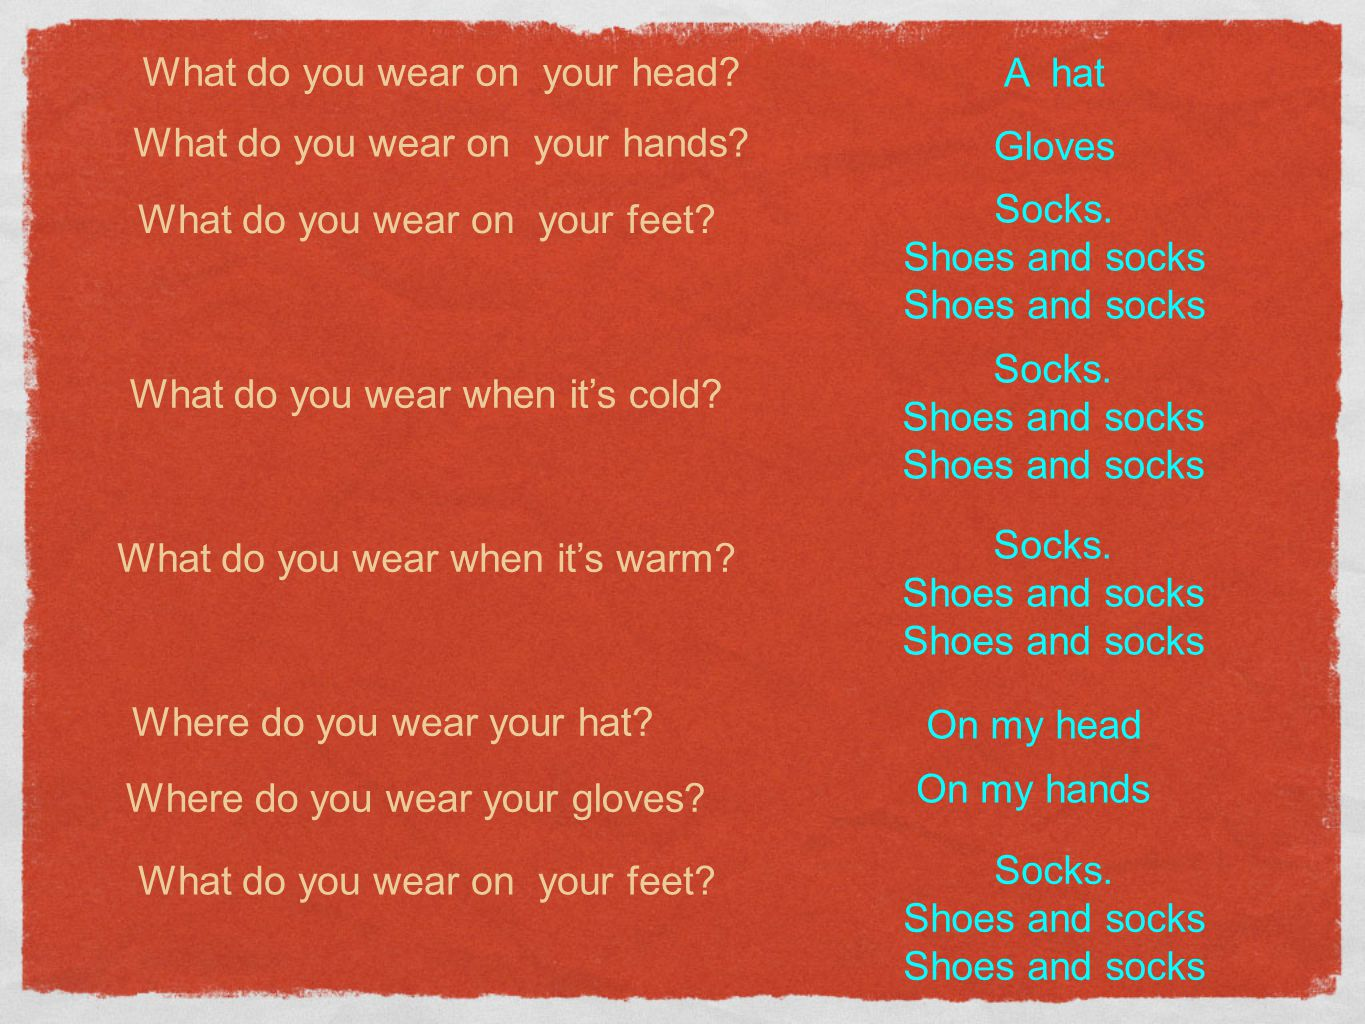 What do you wear on your head? What do you wear on your feet? What do you wear on your hands? A hat Gloves Socks. Shoes and socks What do you wear whe